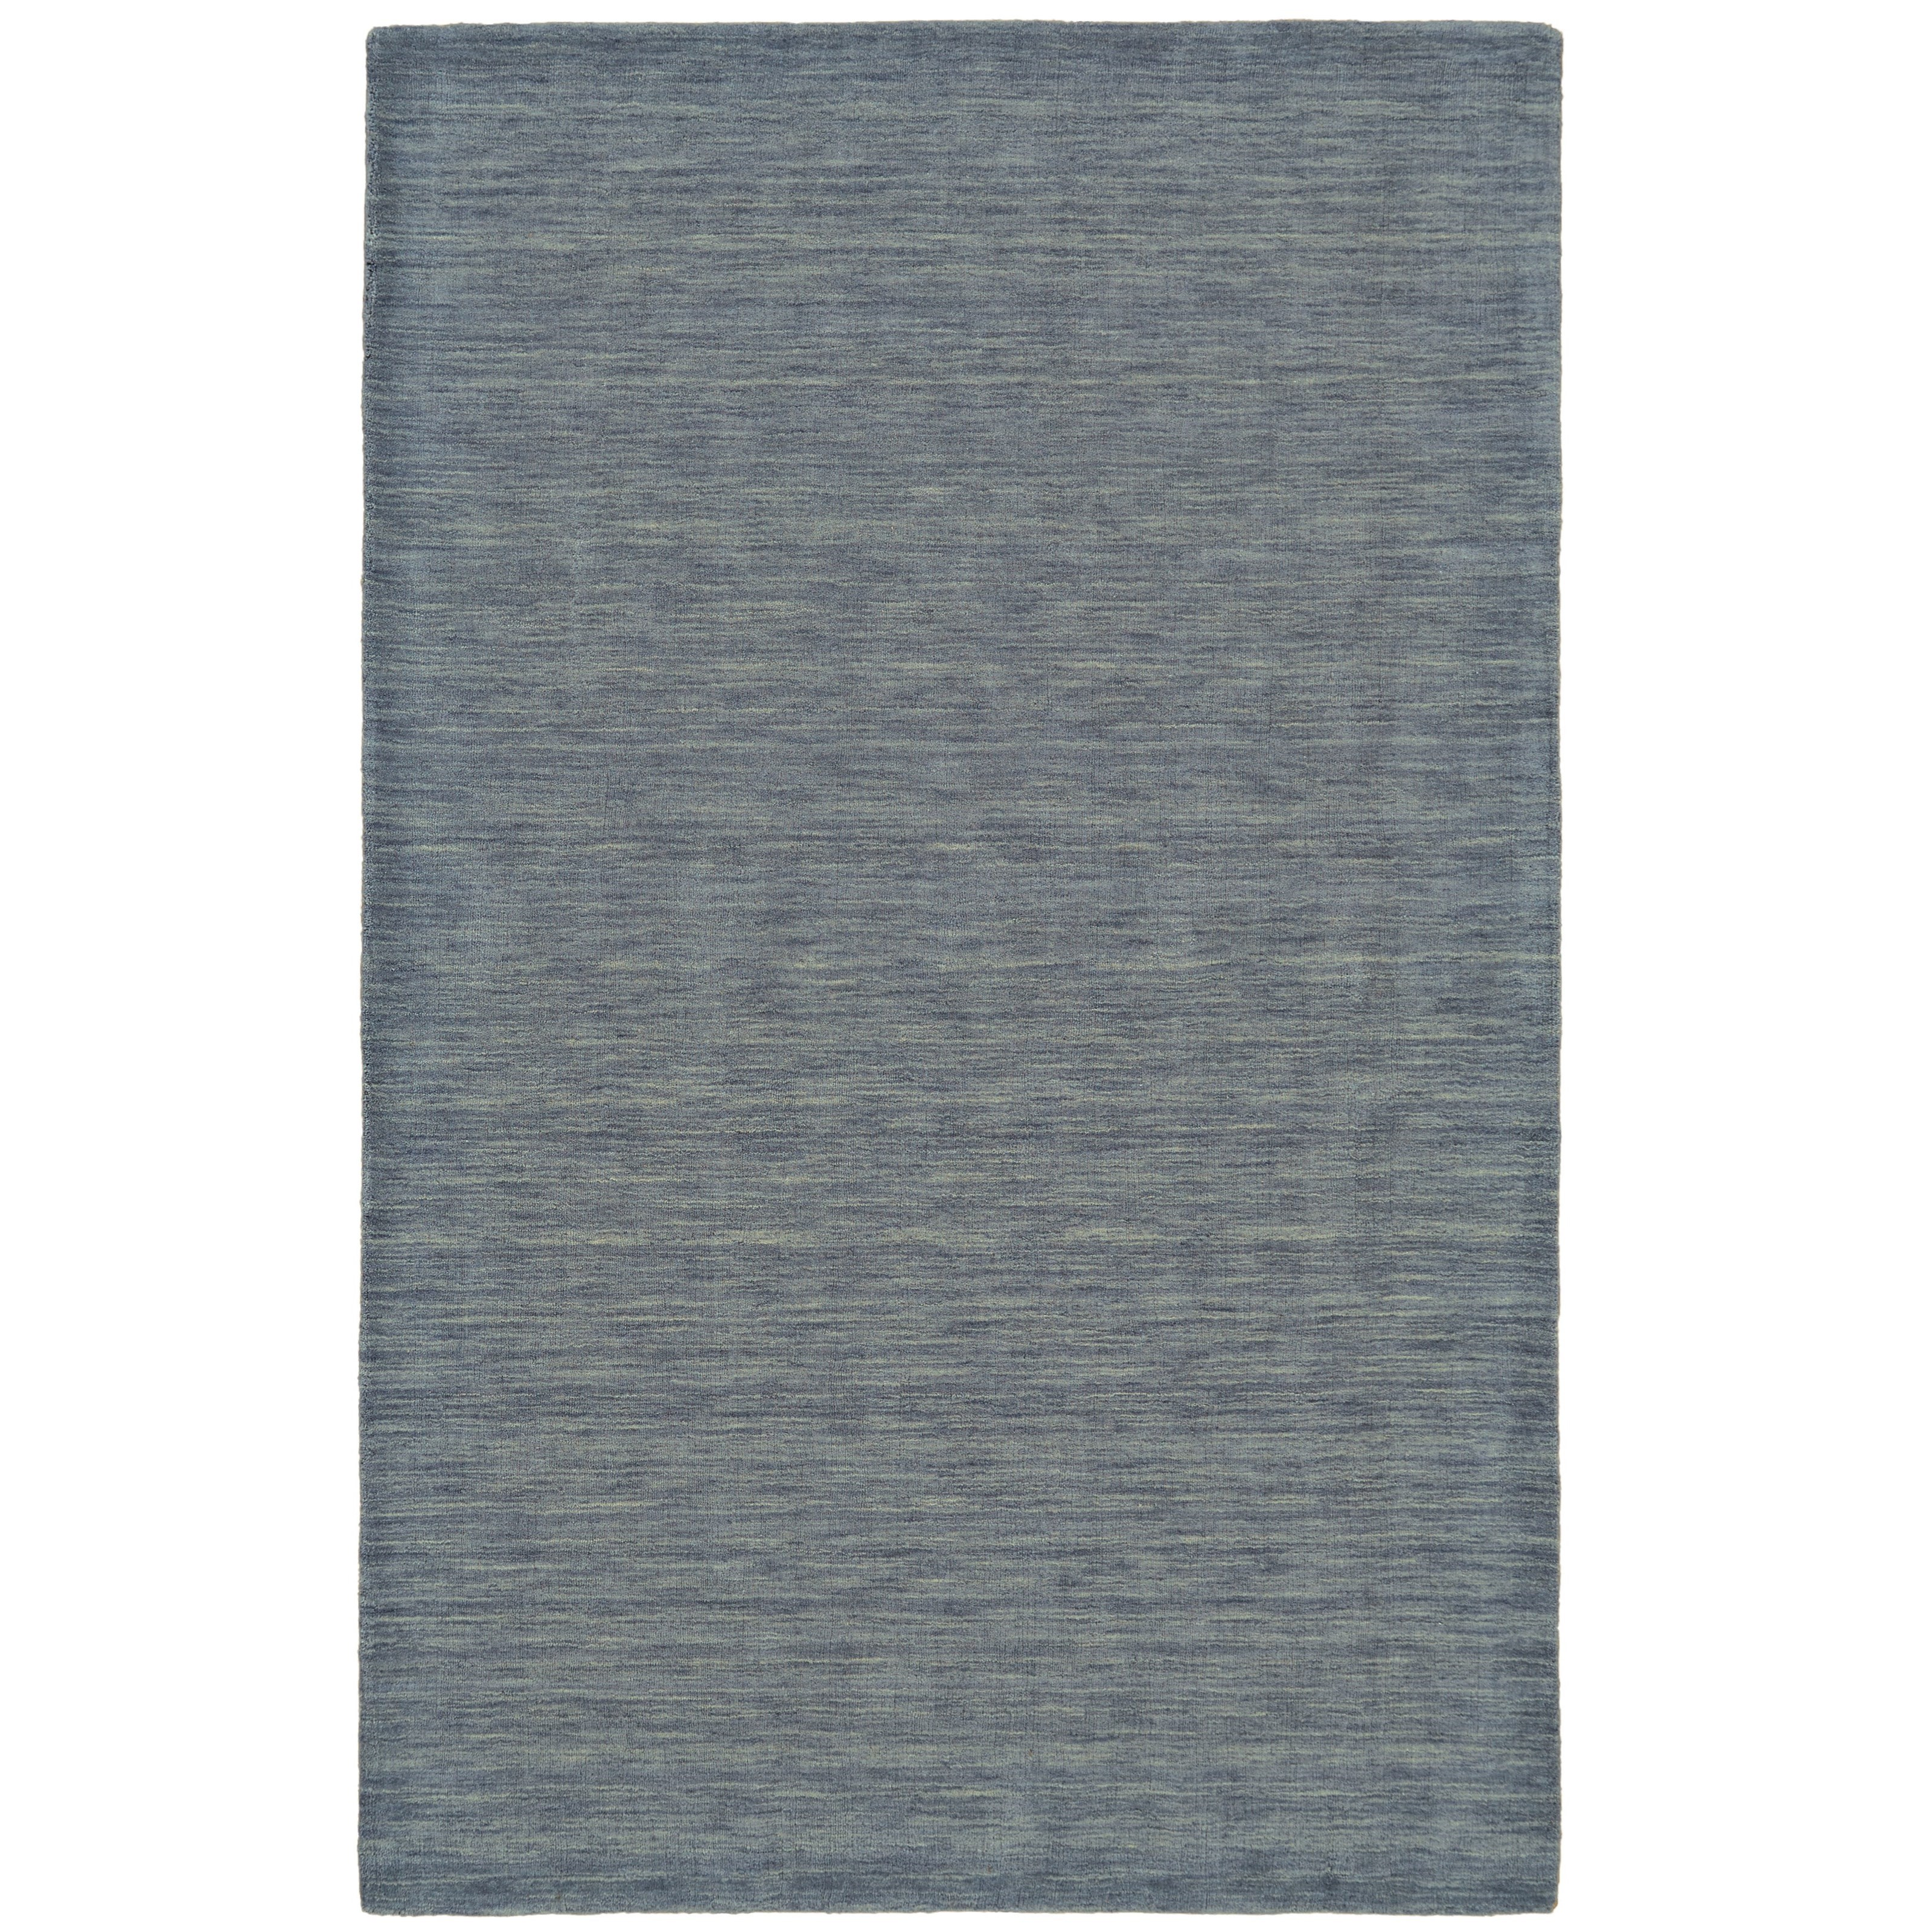 Luna Smoke 5' x 8' Area Rug by Feizy Rugs at Sprintz Furniture